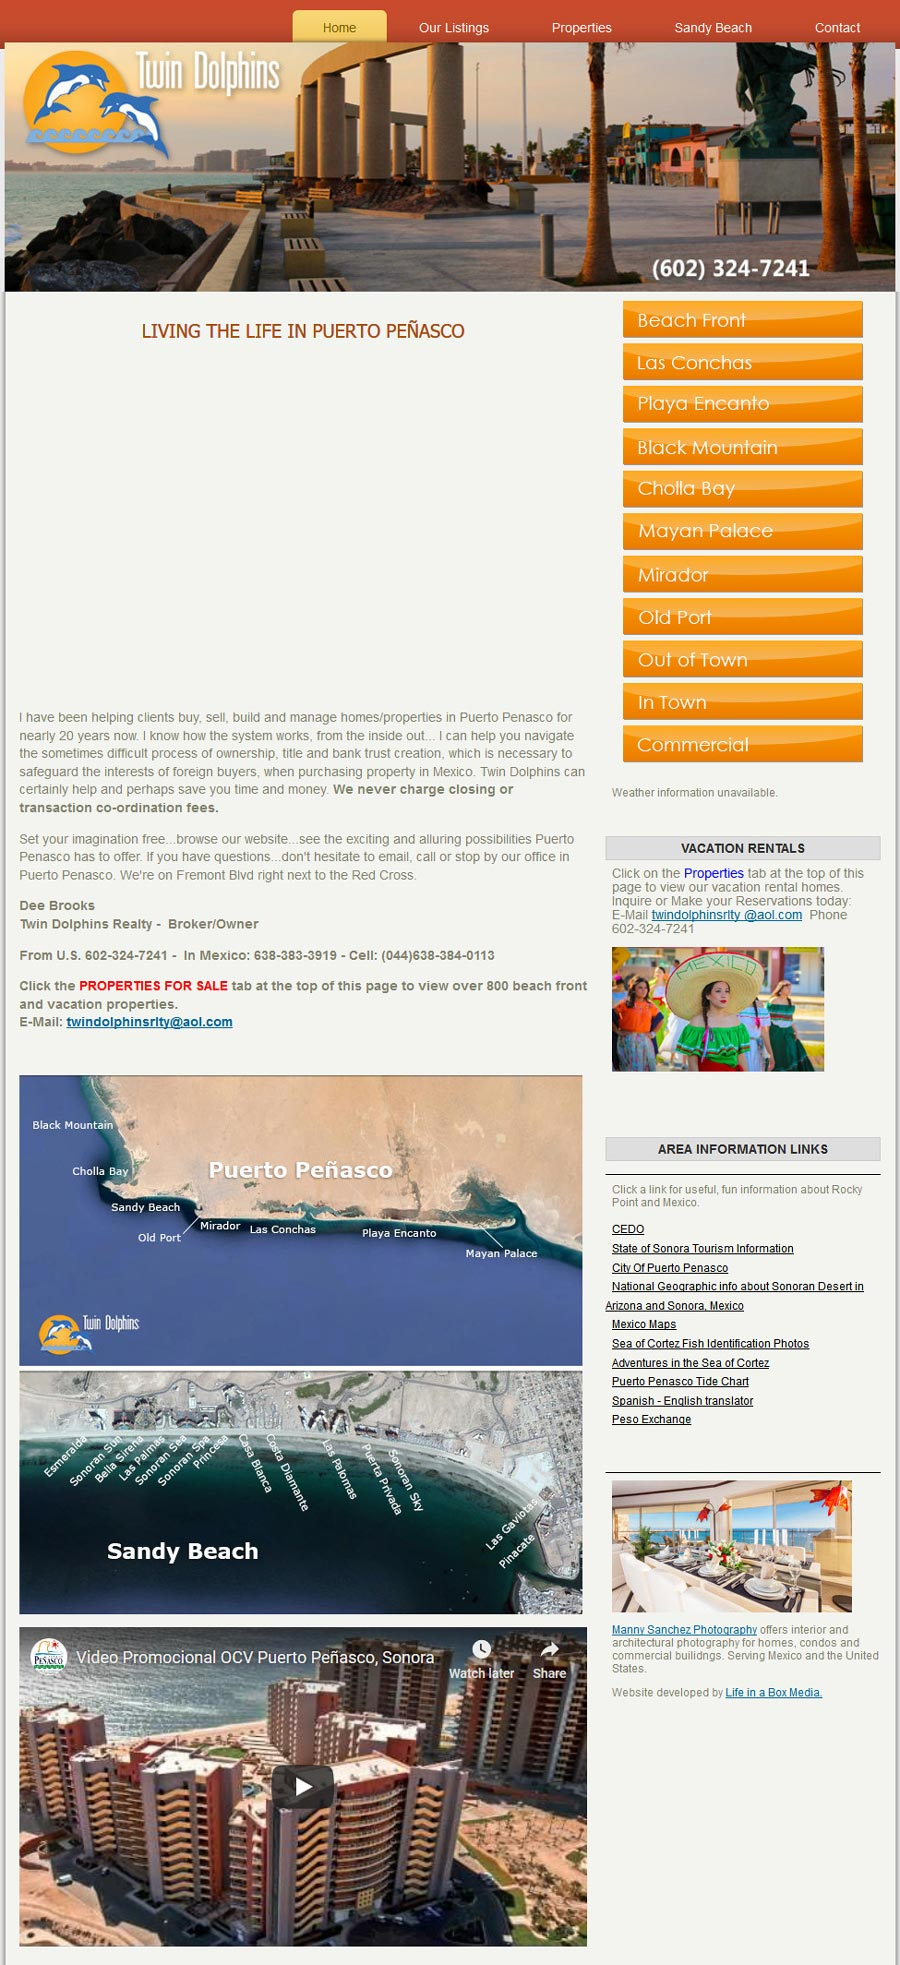 Twin Dolphins Real Estate in Rocky Point (Puerto Penasco). Click here to visit Twin Dolphins' Real Estate website